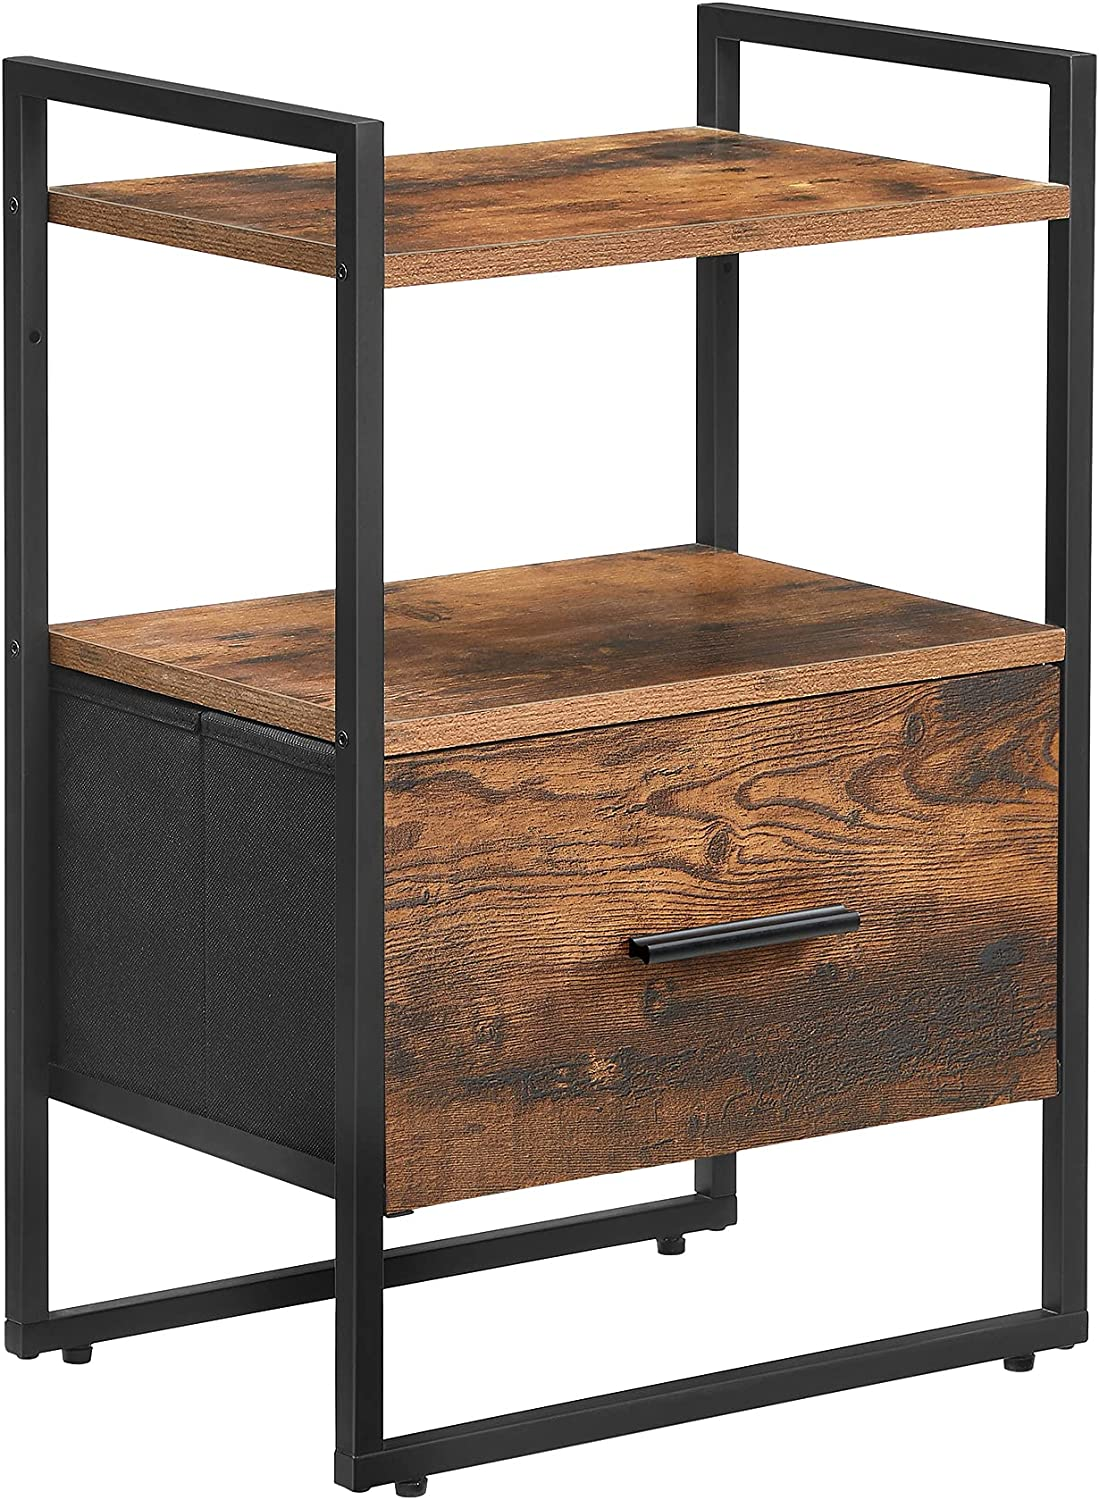 Long Beach Mall SONGMICS Nightstand End Table Fabric fo Milwaukee Mall MDF Drawer with Front